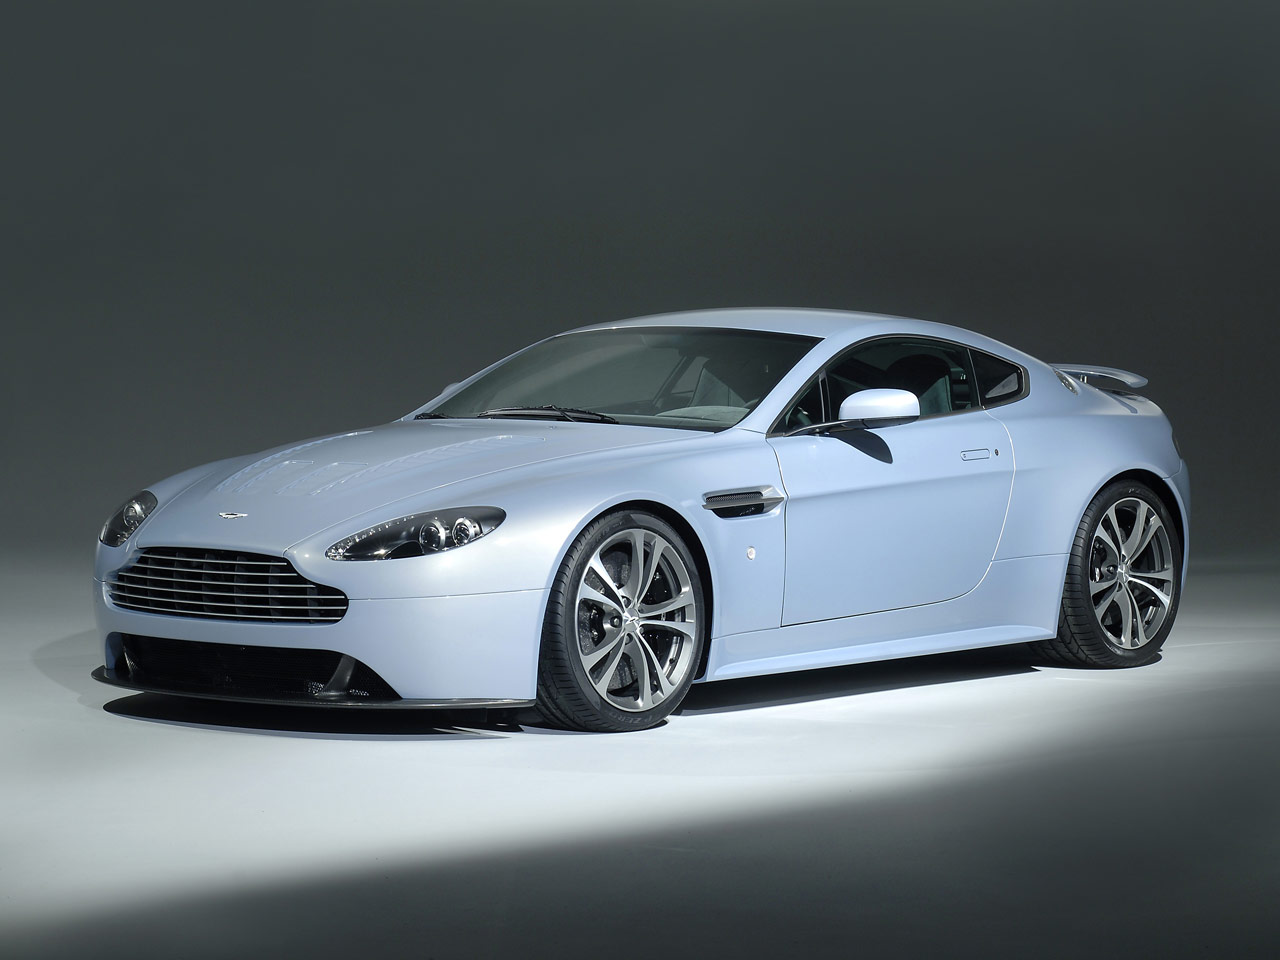 aston martin db9 coupe 2009 wallpaper #12